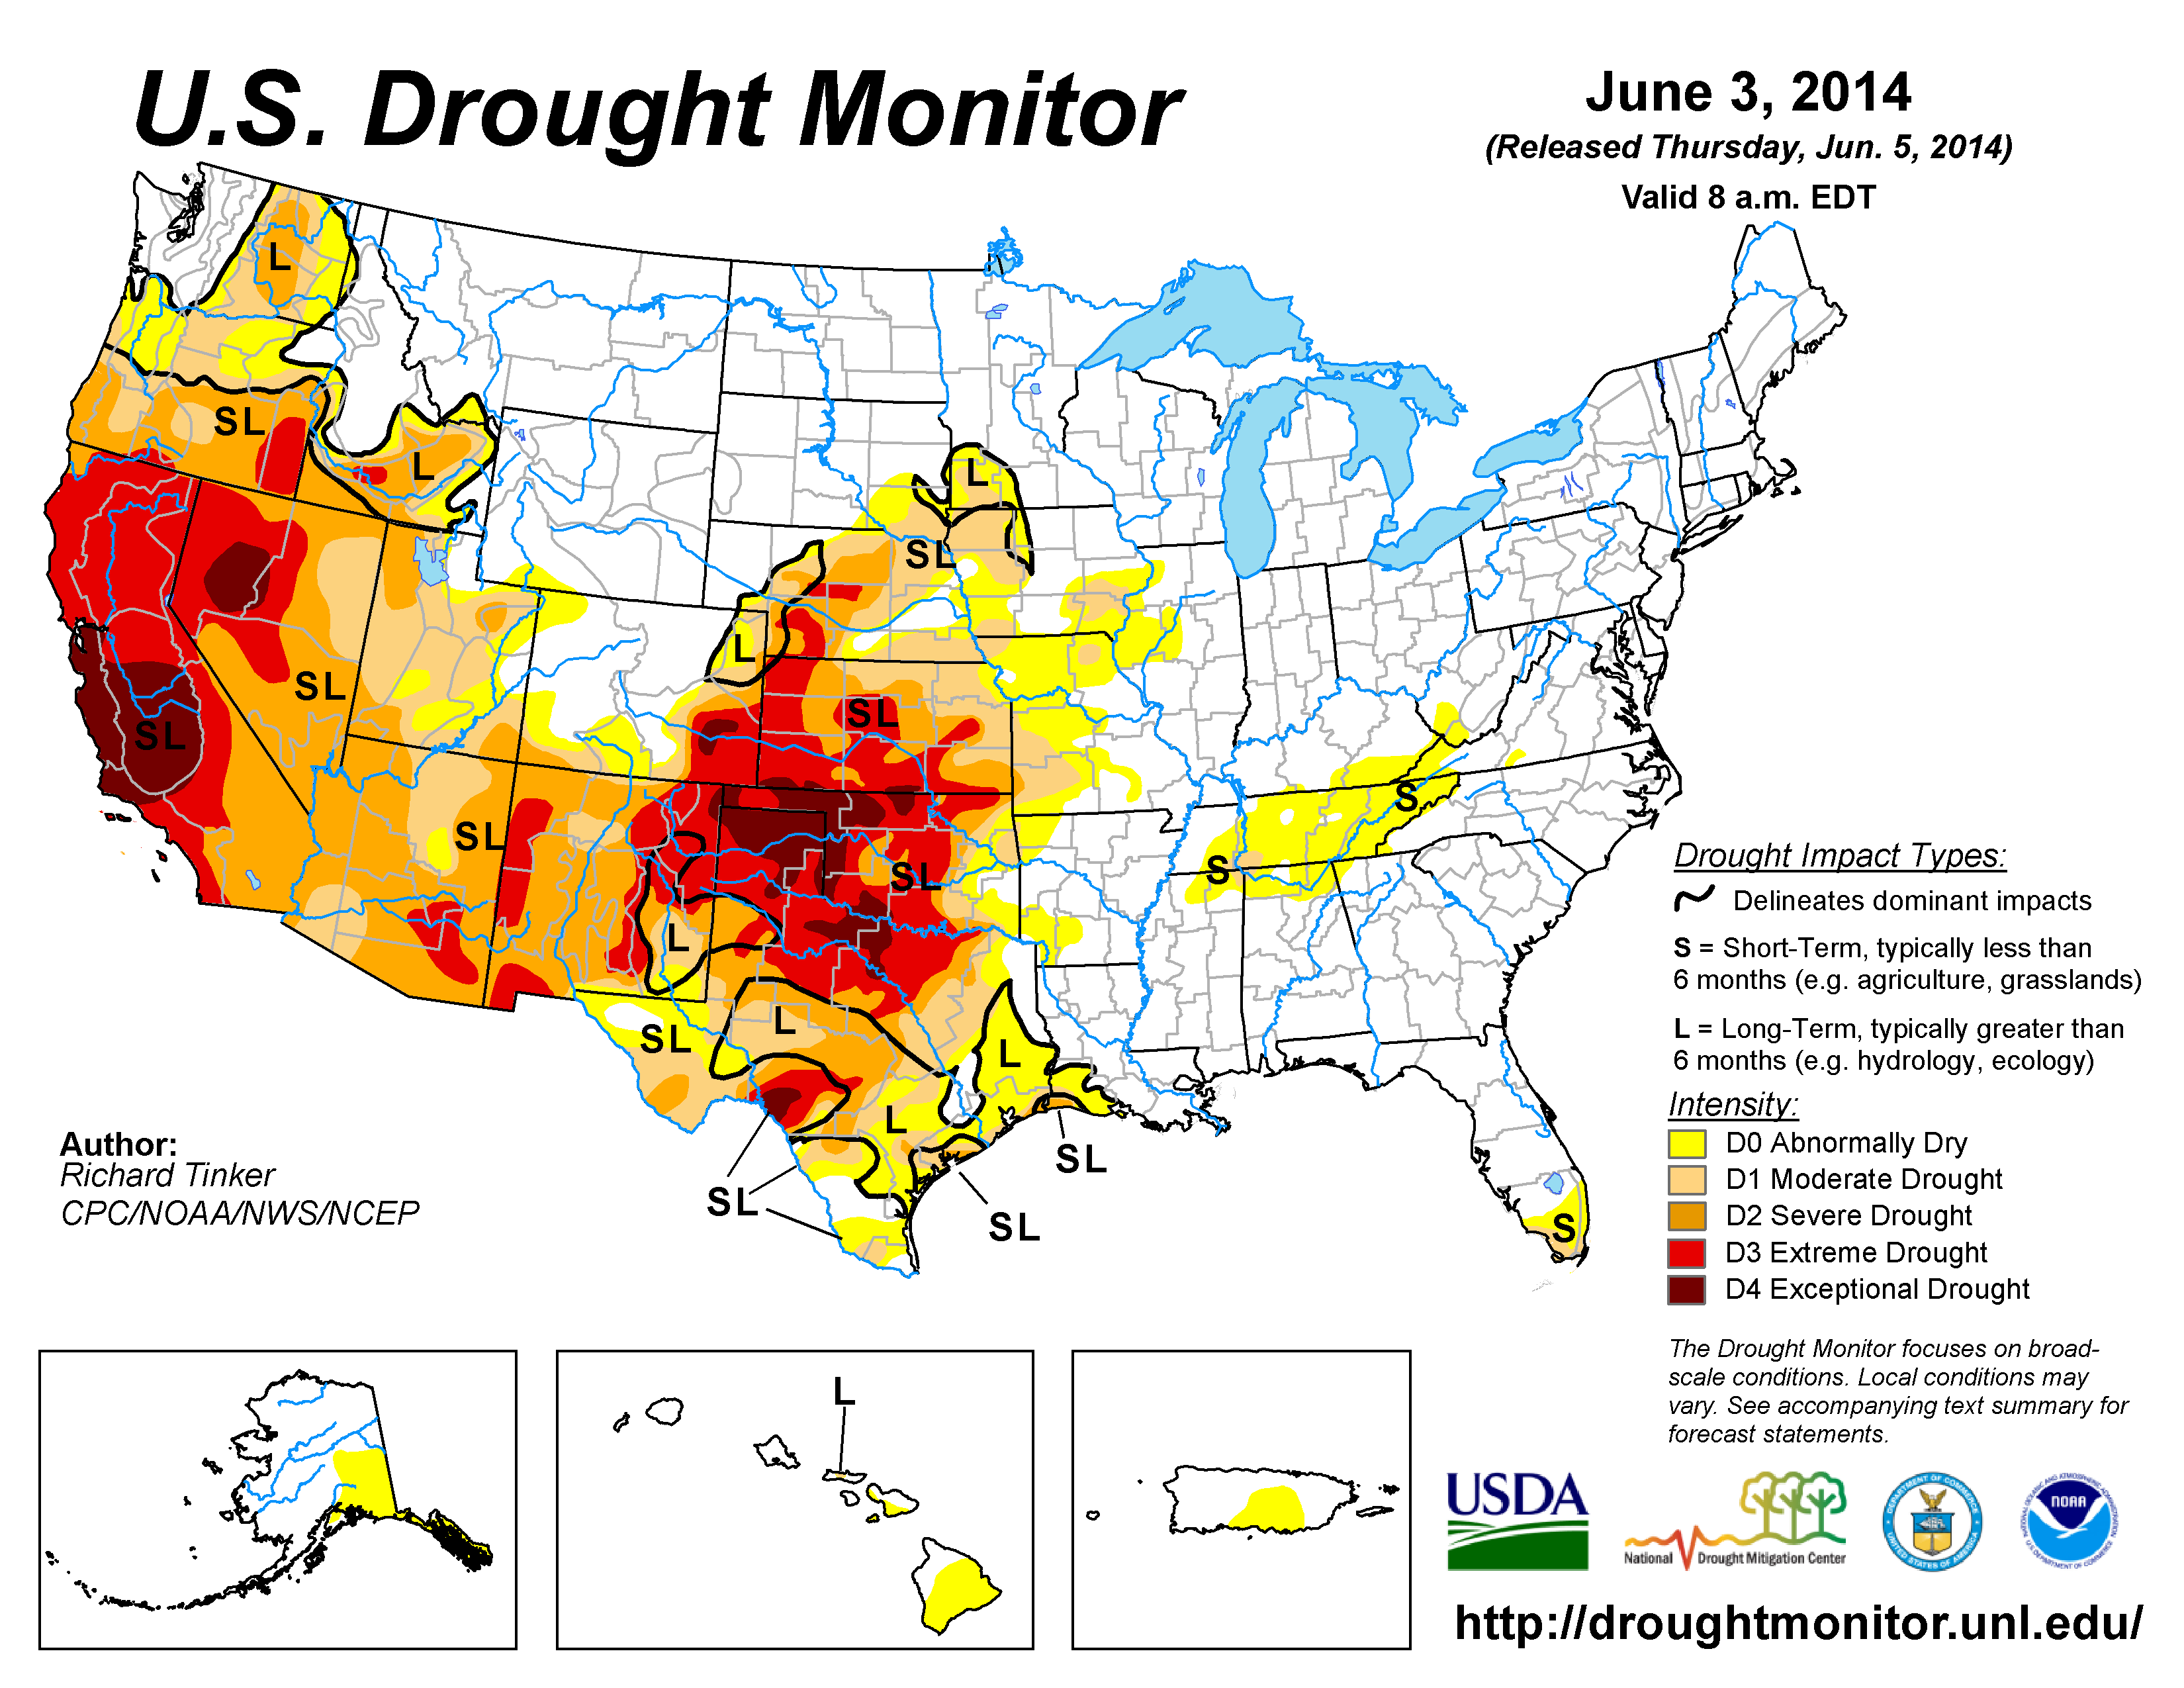 The U.S. Drought Monitor drought map valid June 3, 2014